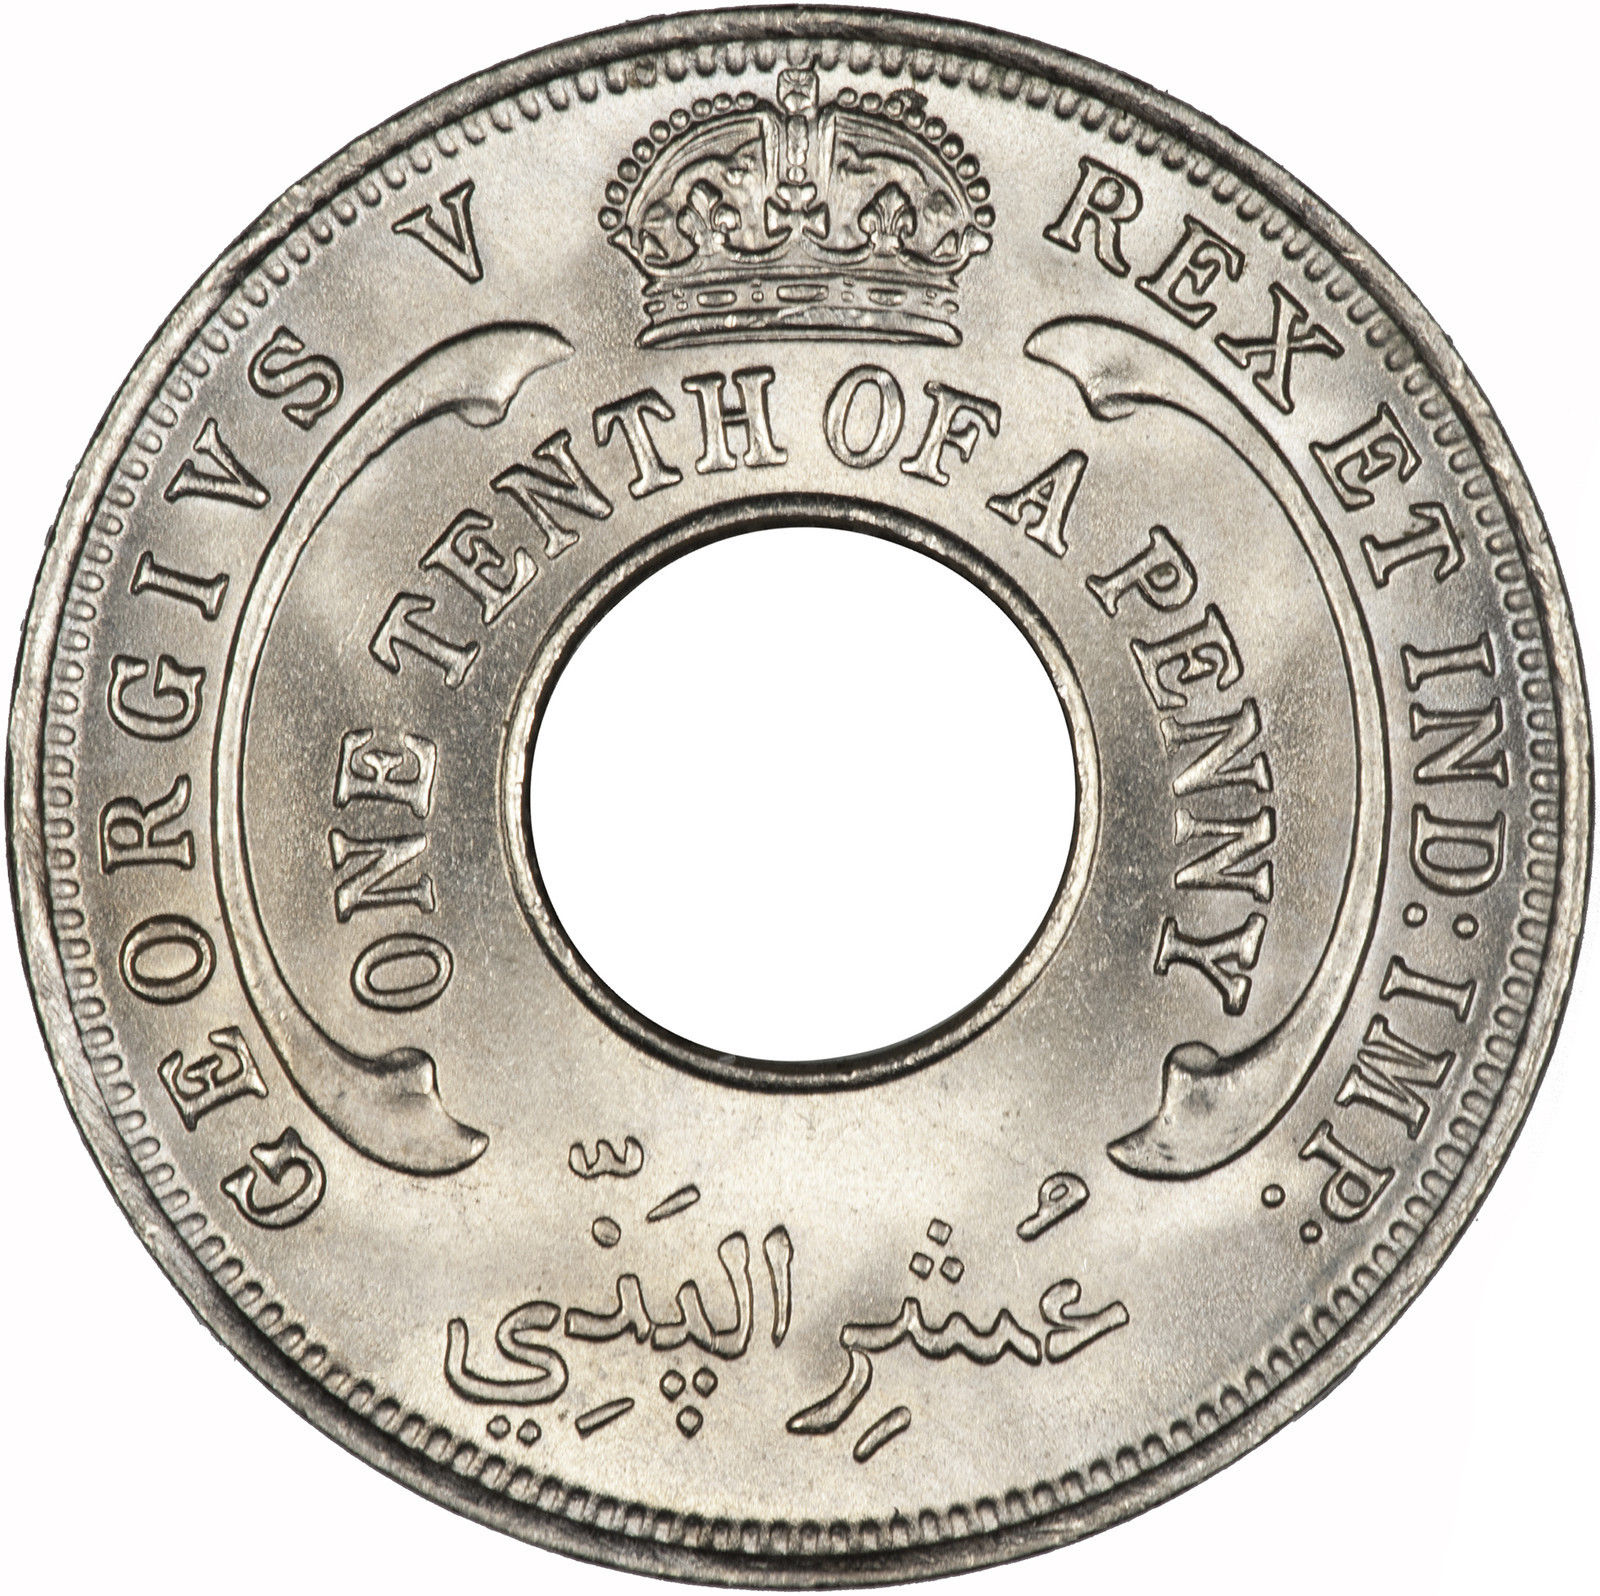 One-tenth Penny: Photo British West Africa 1/10 Penny 1933